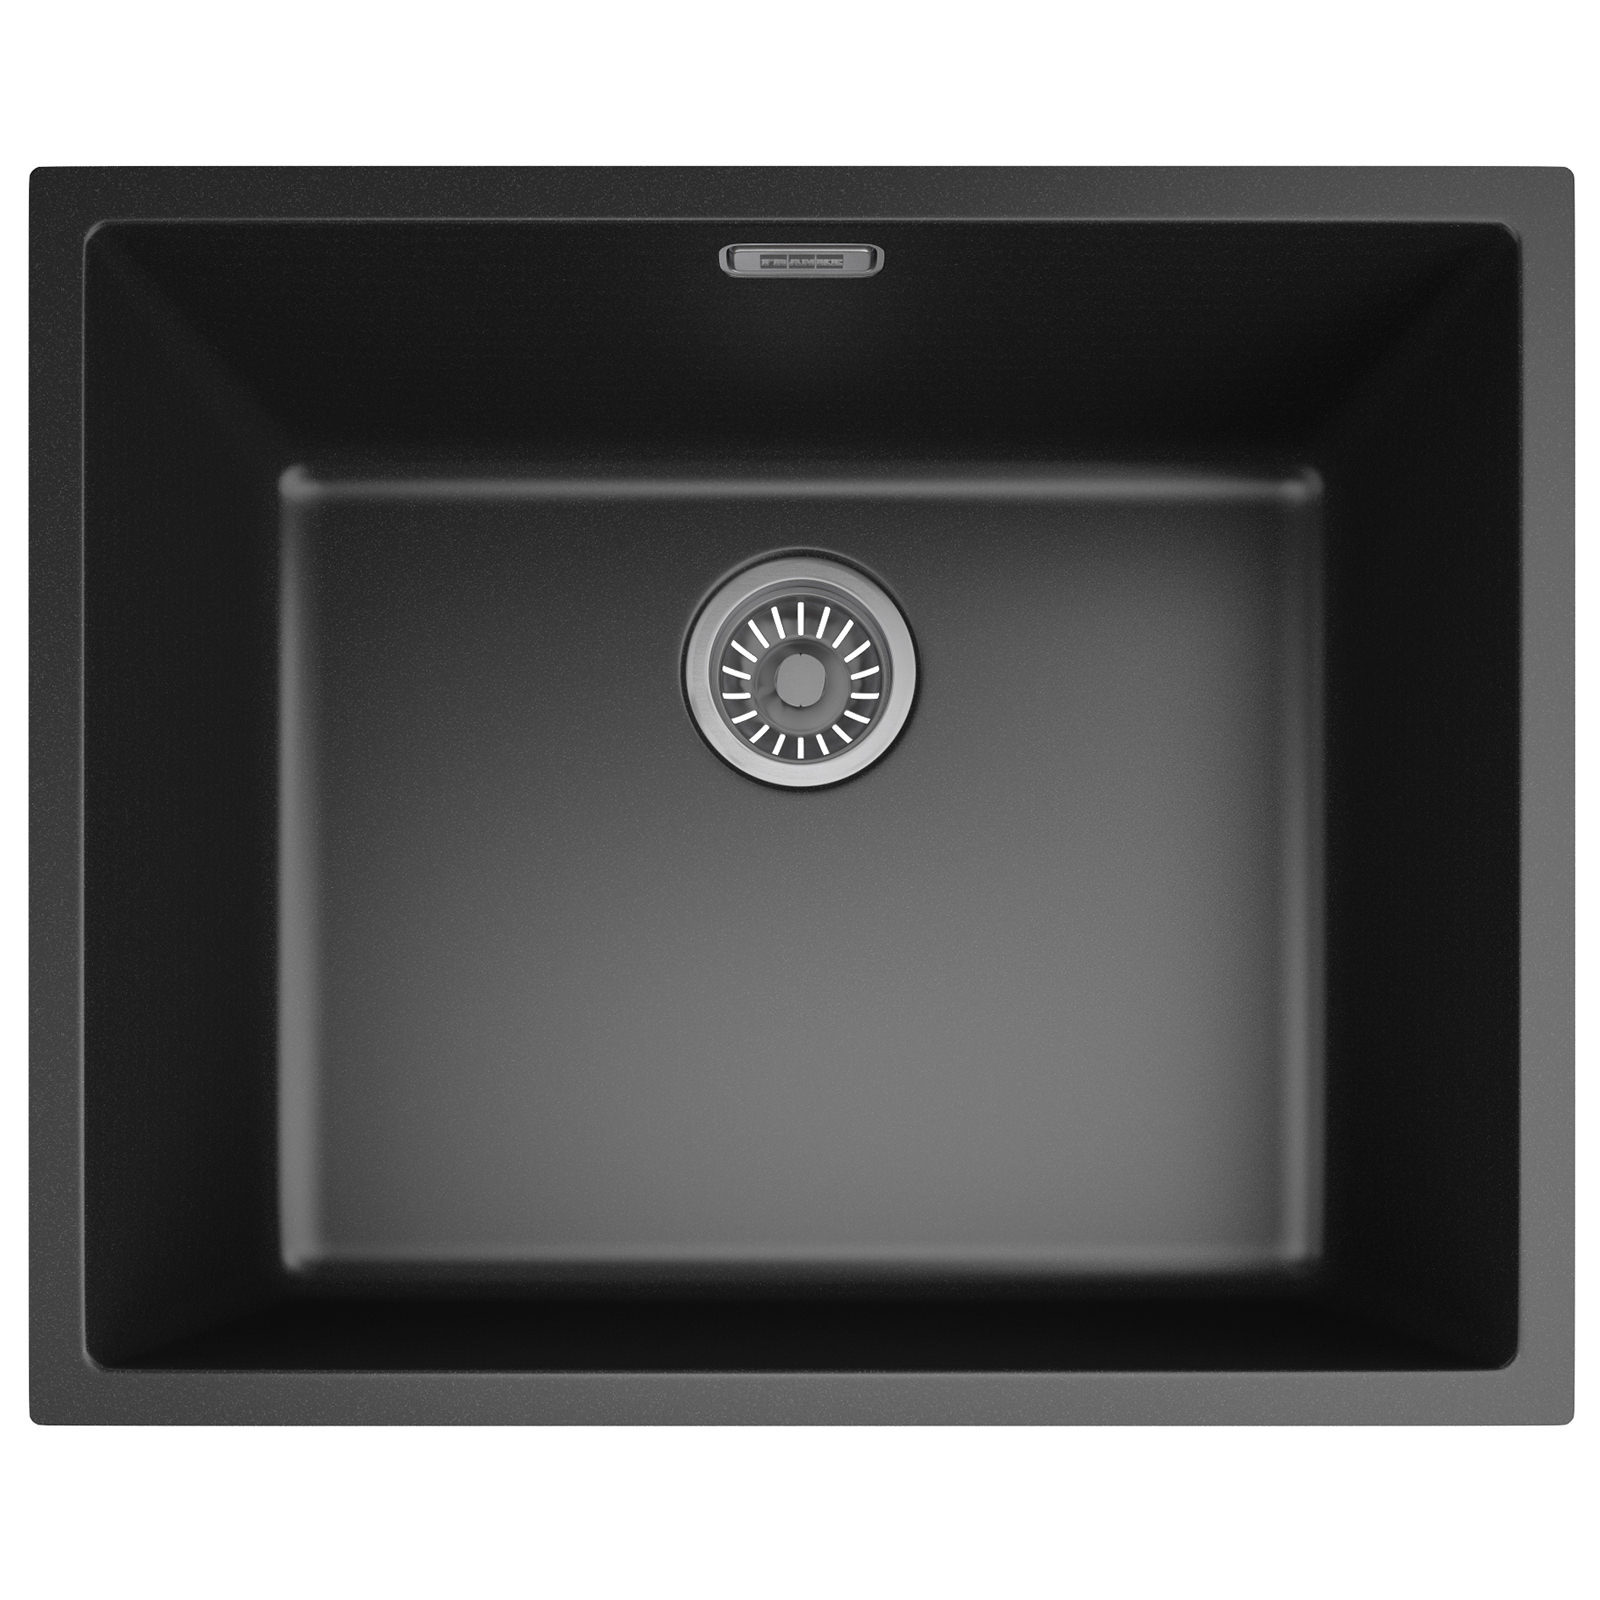 Franke Black Kitchen Sink: Franke Sirius SID 110 50 Tectonite Carbon Black 1.0 Bowl